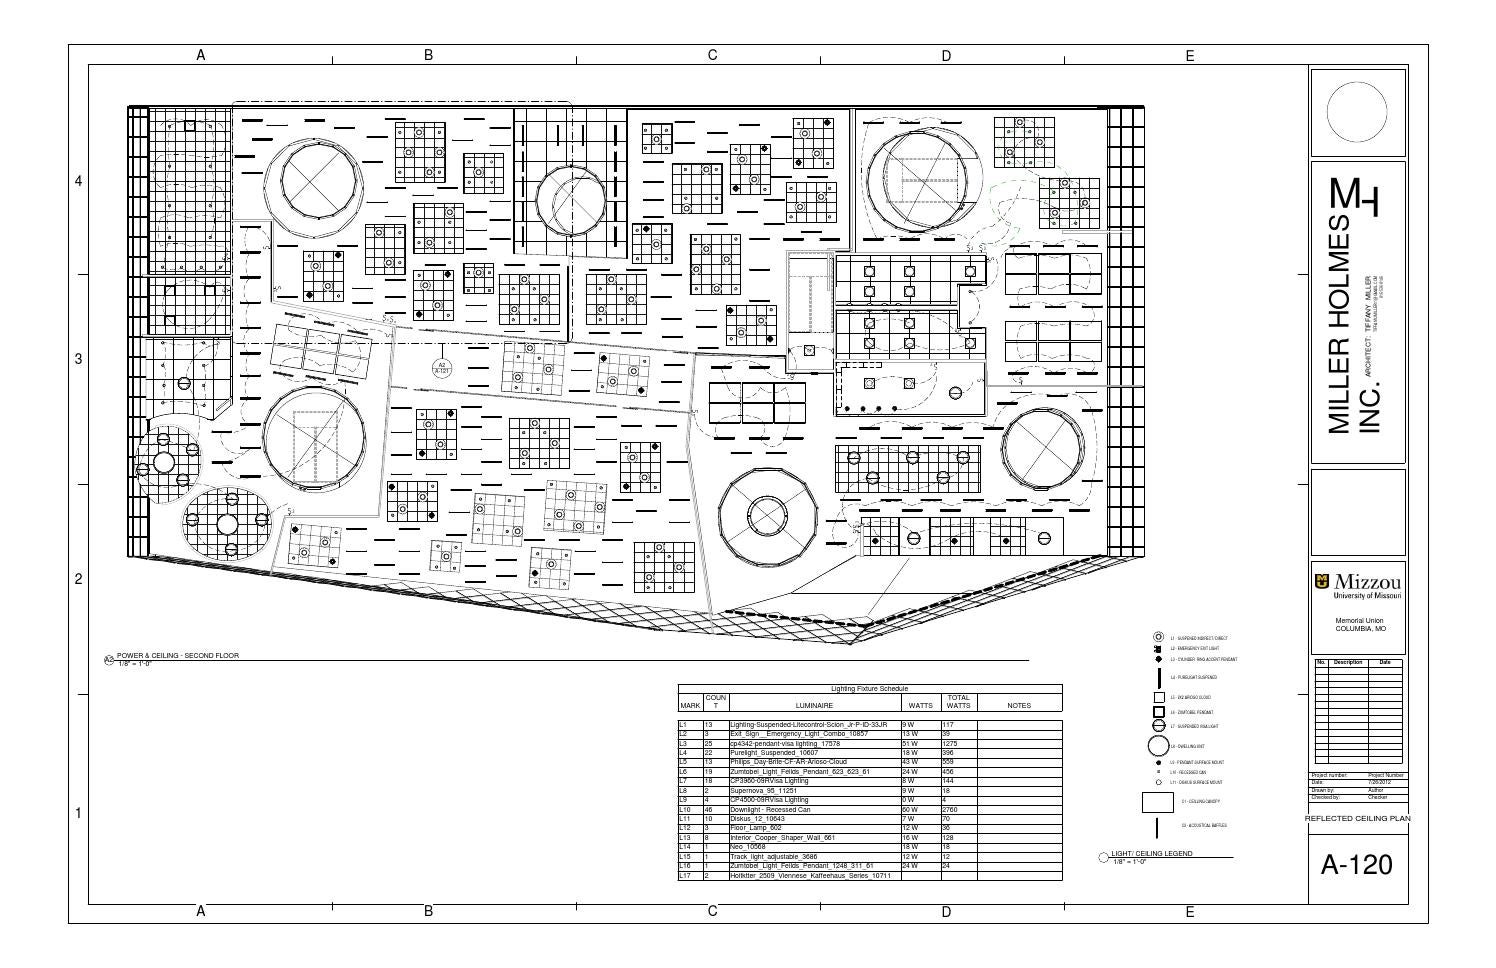 Autocad Drawings as well Layout Plan For Home Best Of Electrical Plan Ex le Electrical Floor Plan Drawing also 500126e828ba0d2c9f000c0c Smiles By Dr Cecile Buensalido Architects Reflected Ceiling Plan further Cad Details besides Construction Drawings. on reflected ceiling plan